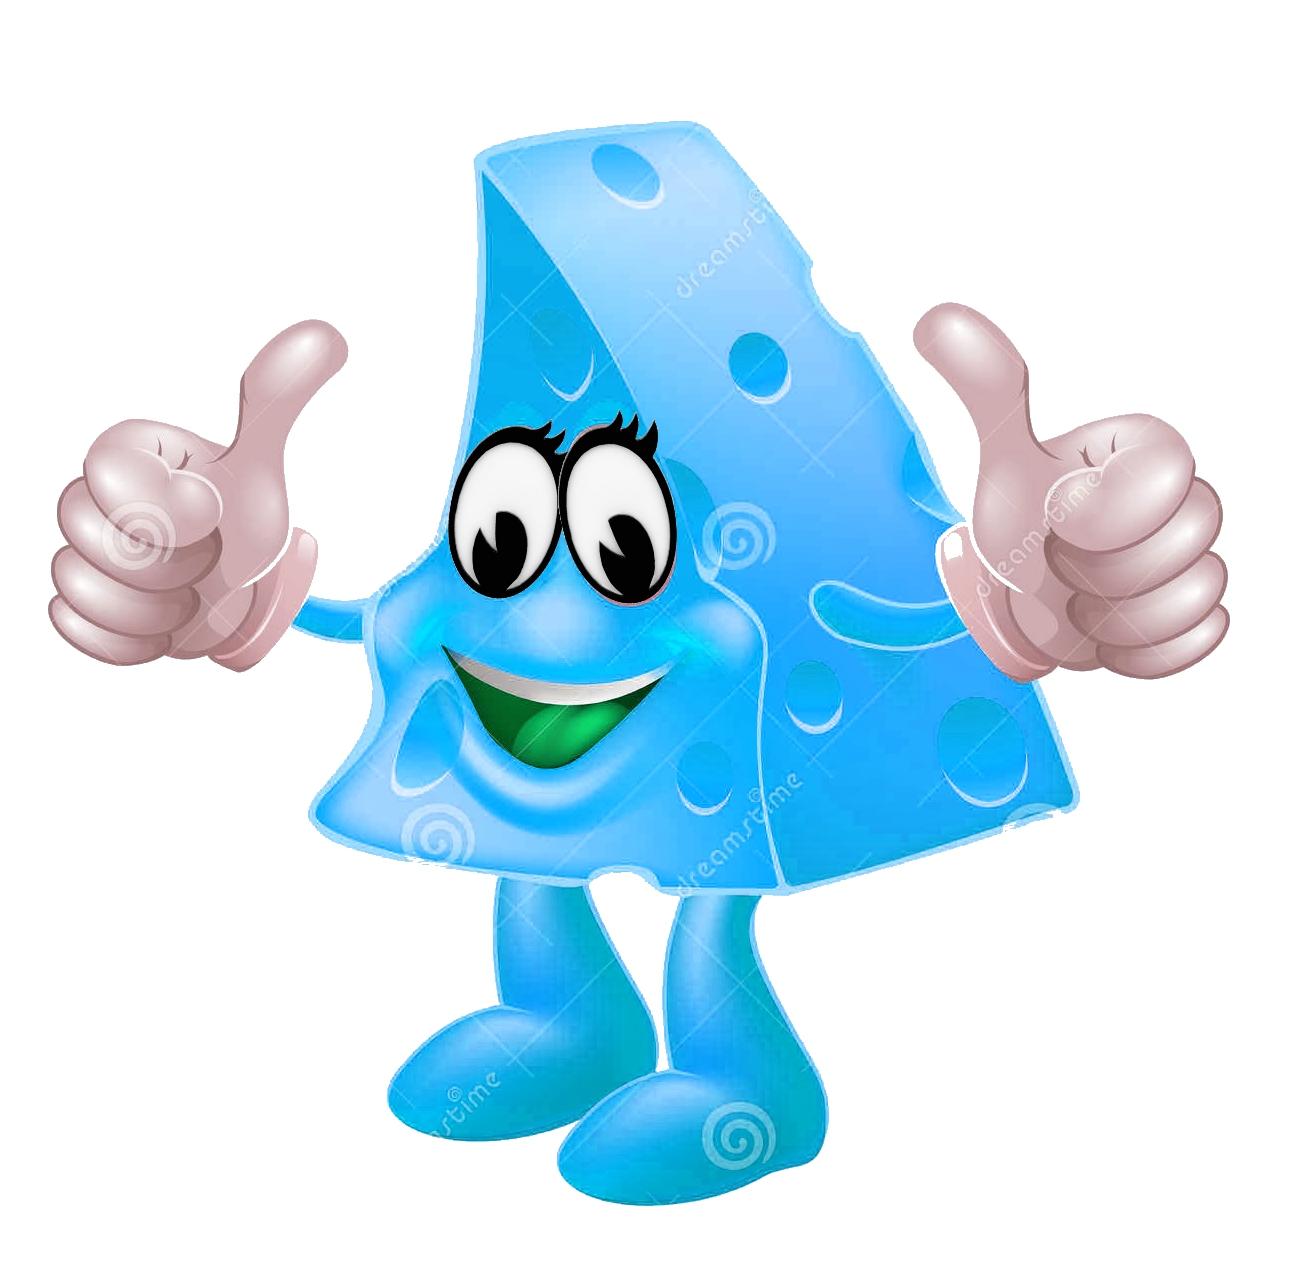 Shopkins Cheese Blue Png image #41874